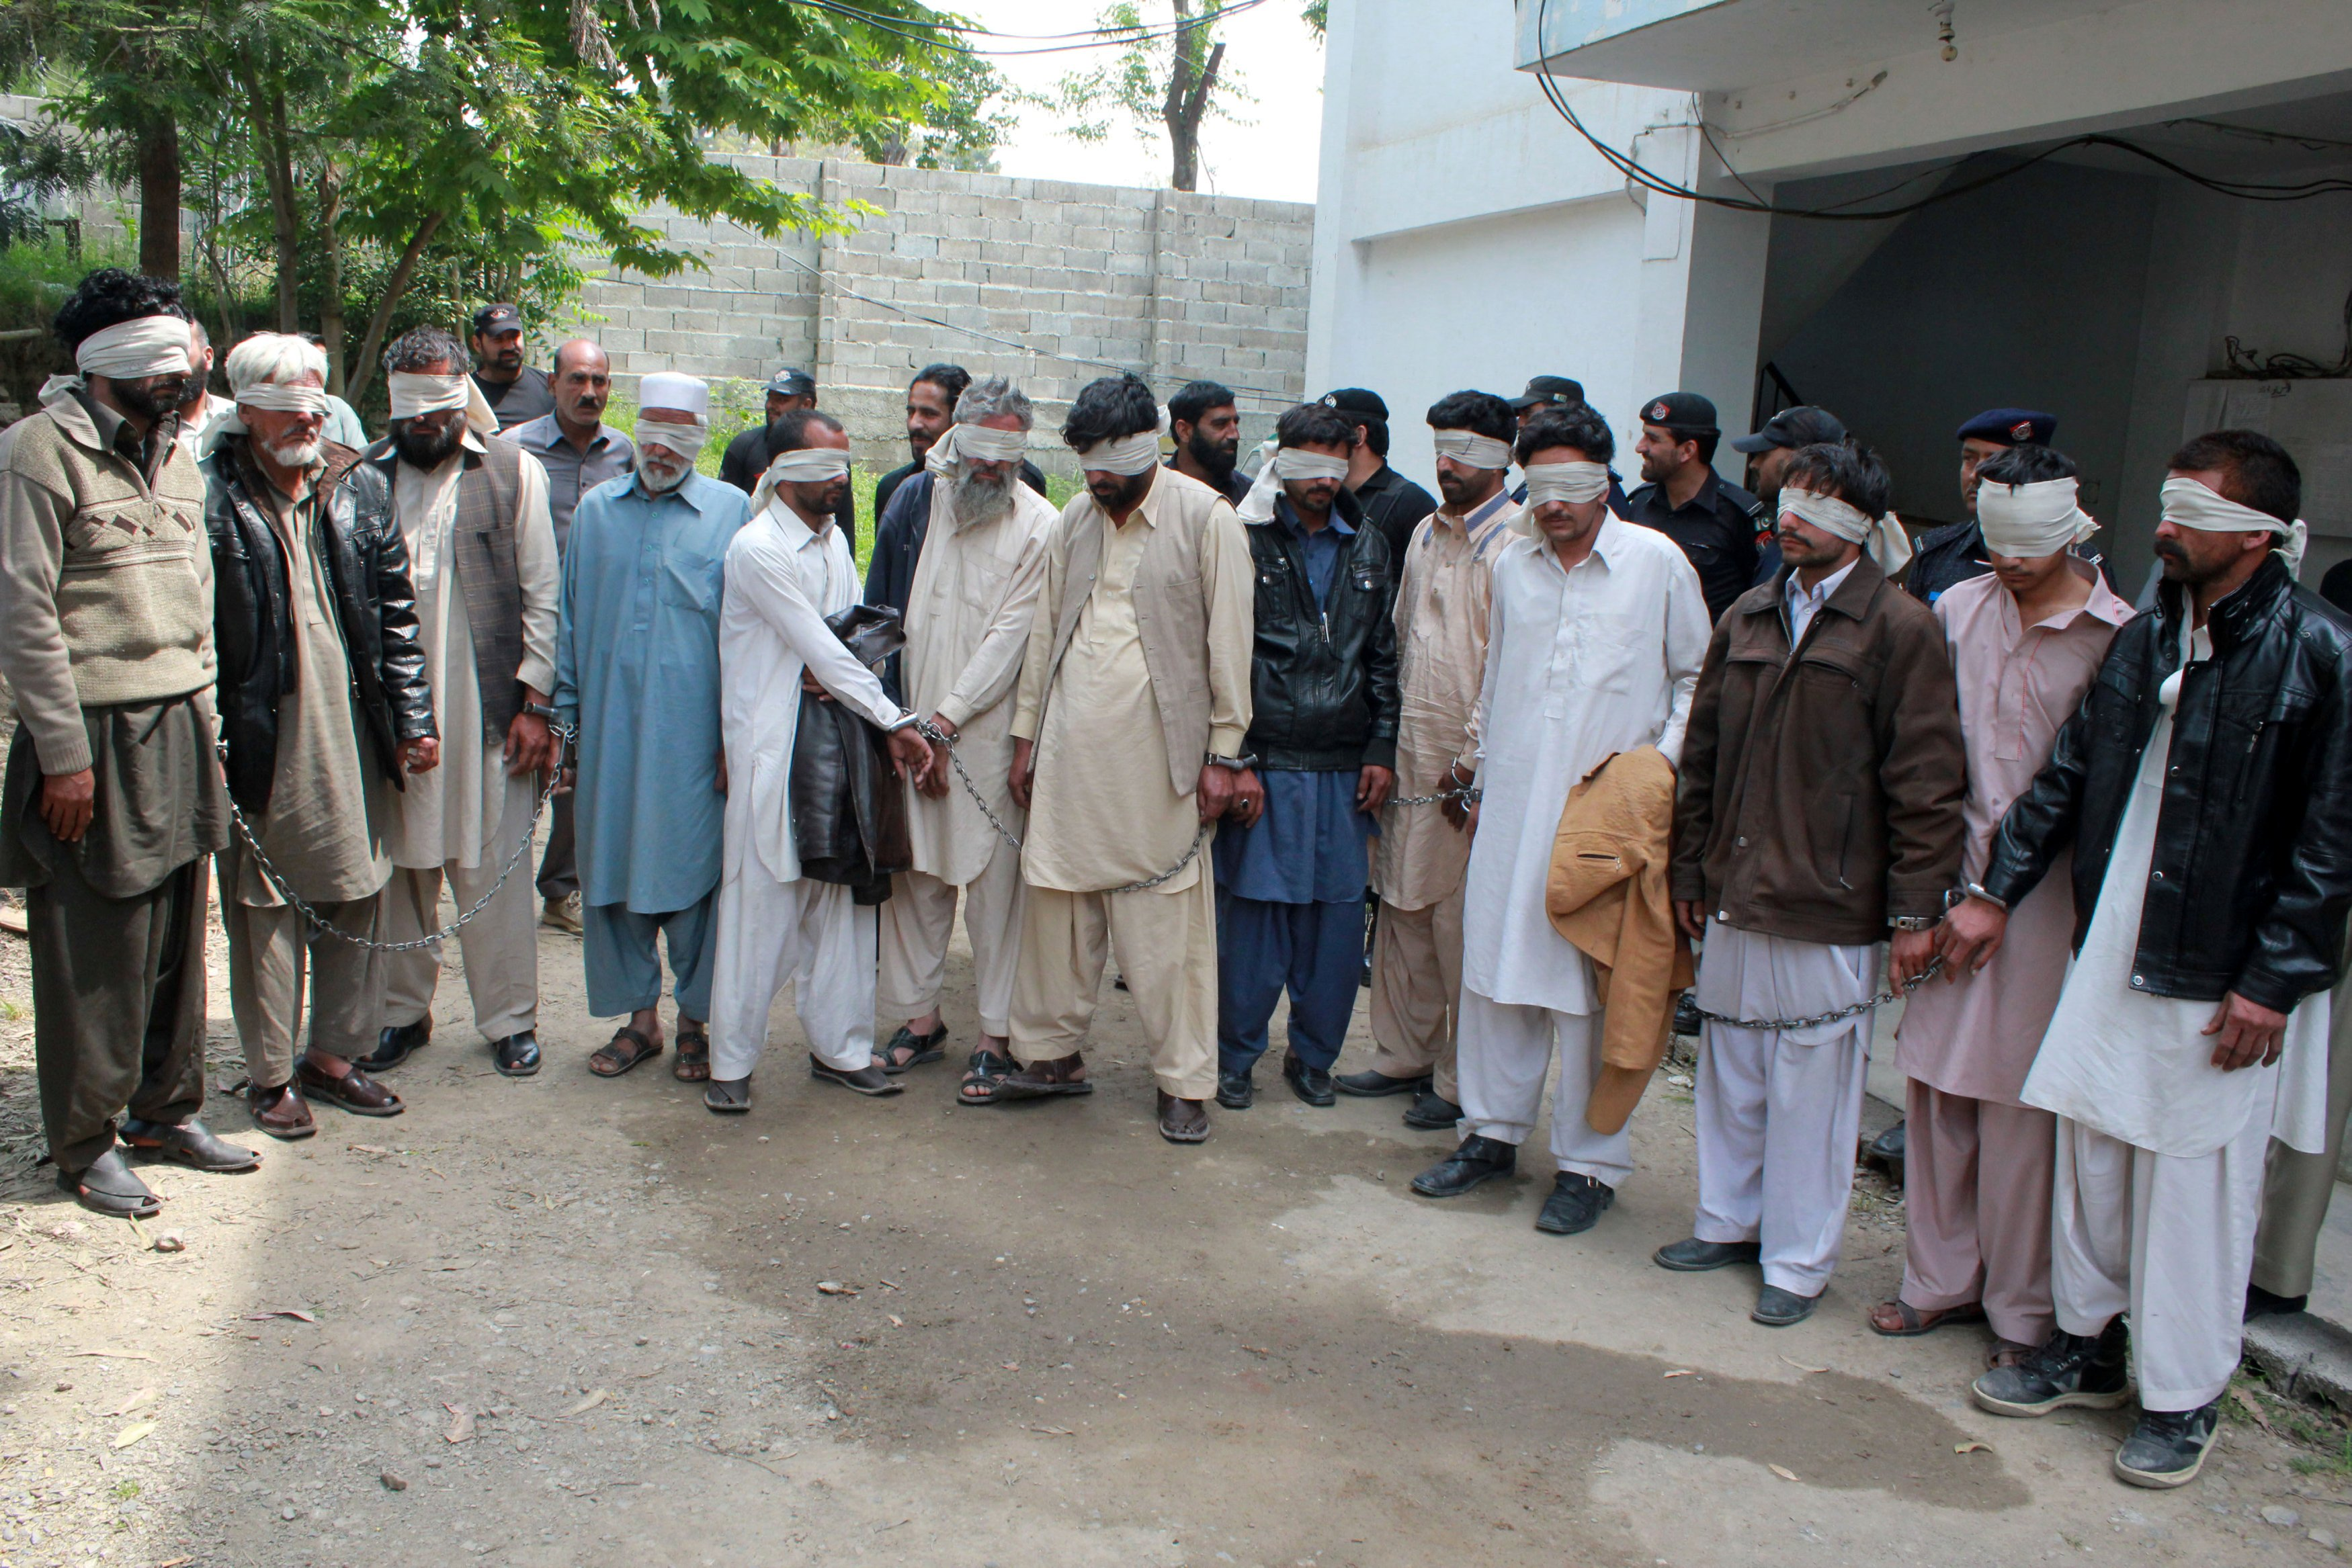 Members of a tribal council accused of ordering the burning death of a 16 year old girl are shown to the media after they were arrested by police in Donga Gali, outside Abbottabad, Pakistan on May 5, 2016.